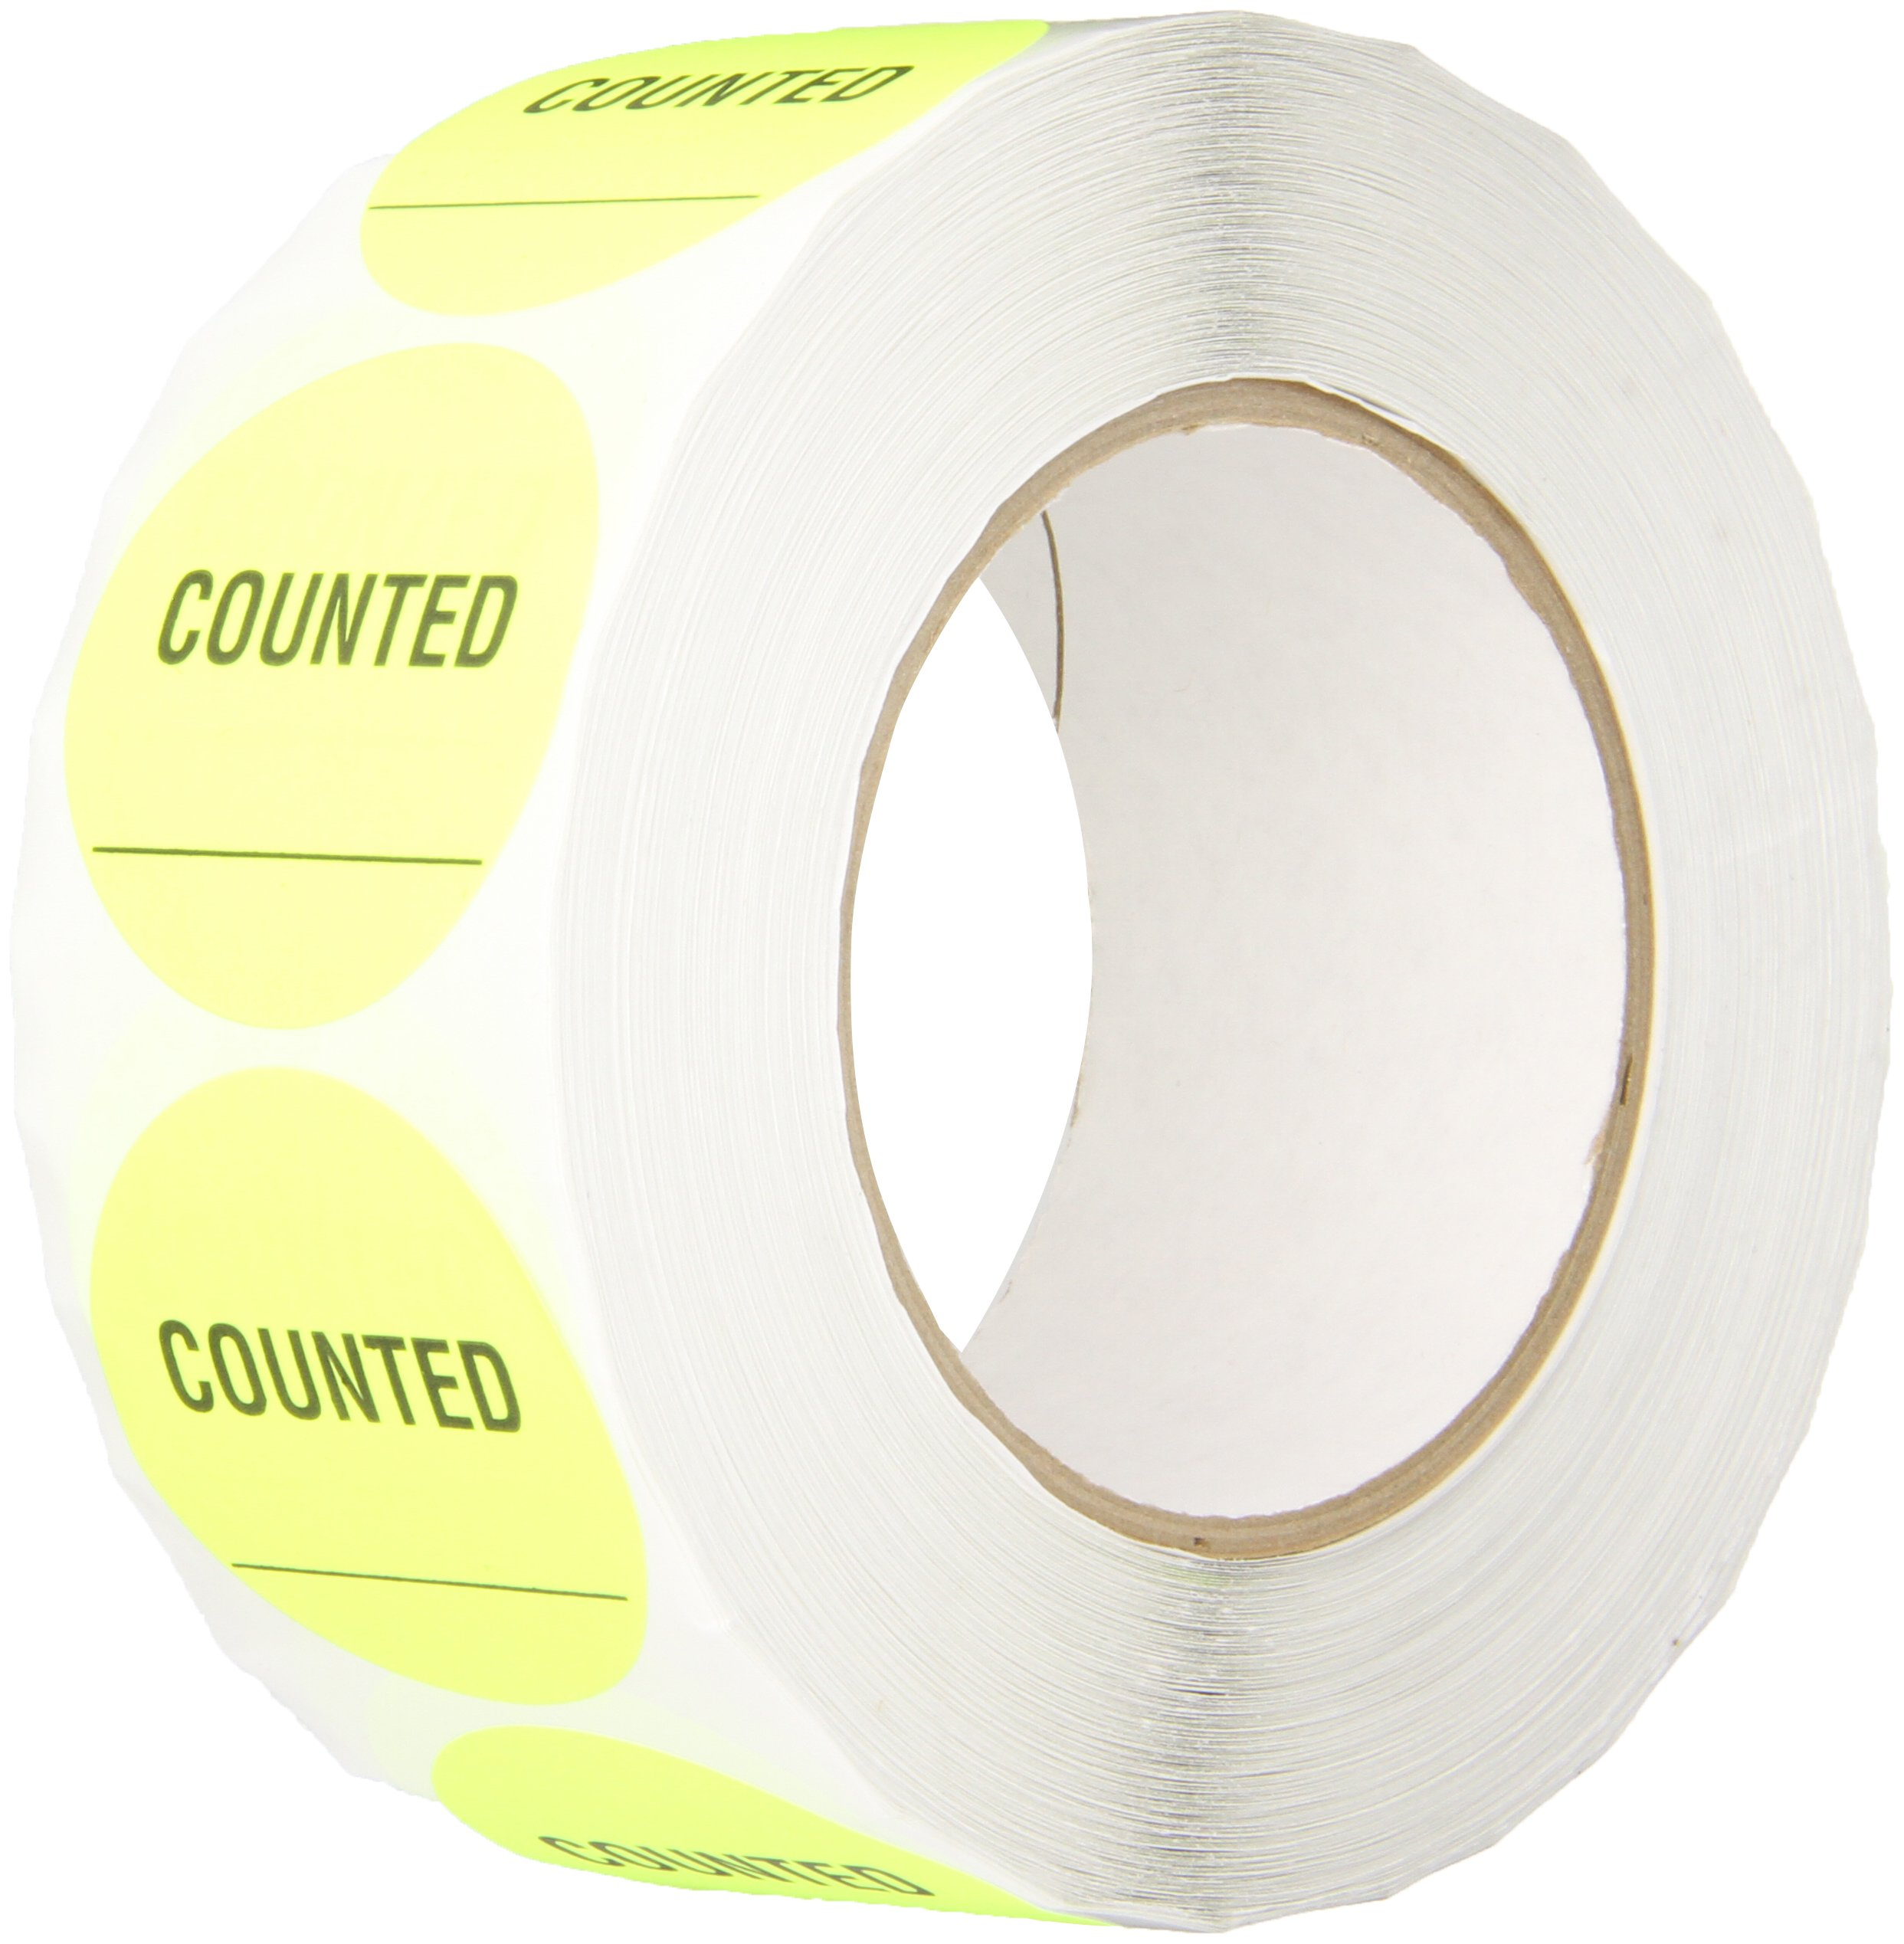 "TapeCase INVLBL-022""Counted"" Inventory Control Label in Yellow [Pack in 1000] - 2 in. Circular Label for Marking, Color Coding, Notating Inventory Items"